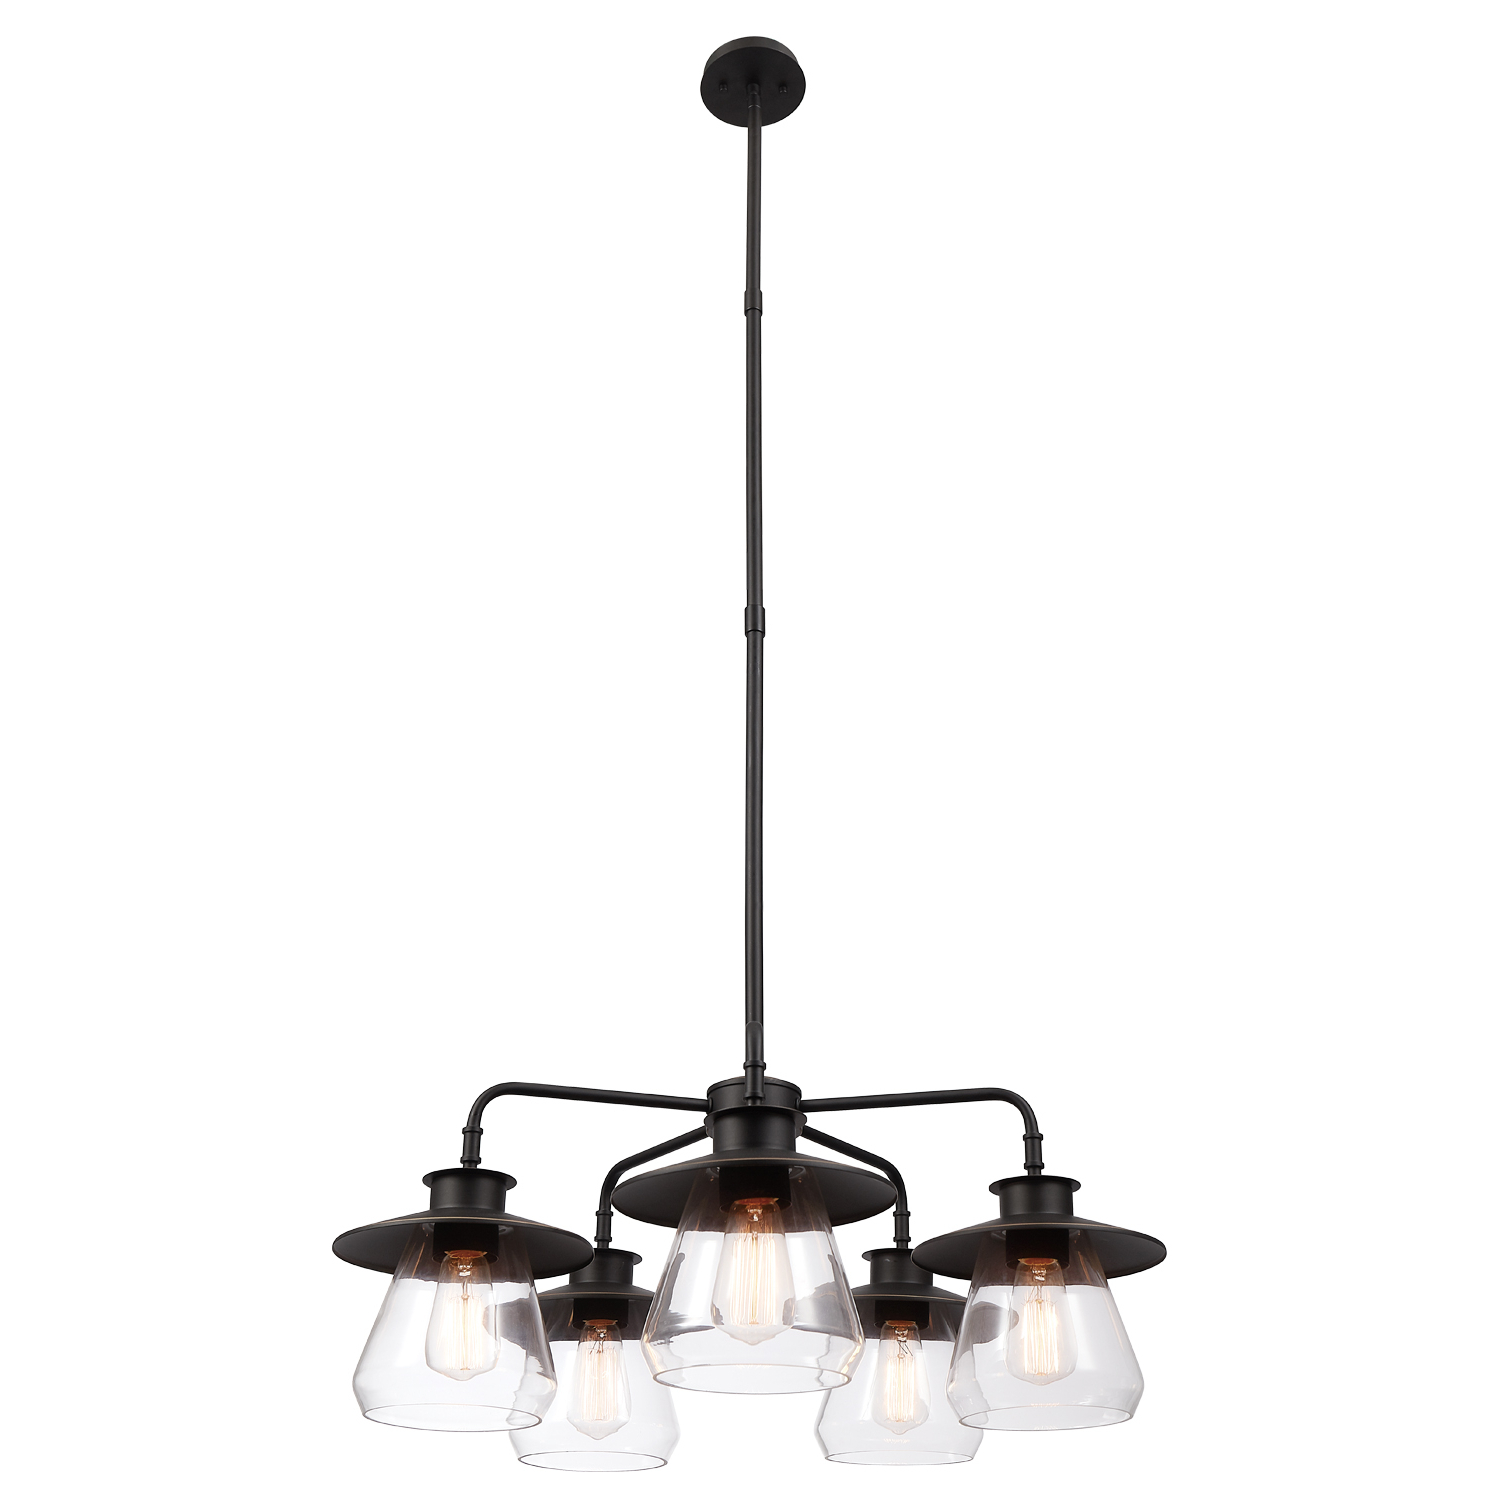 Globe Electric Nate 5 Light Oil Rubbed Bronze Chandelier With Clear Glass  Shades,60471 Inside Current Novogratz Vintage 5 Light Kitchen Island Bulb Pendants (View 5 of 20)